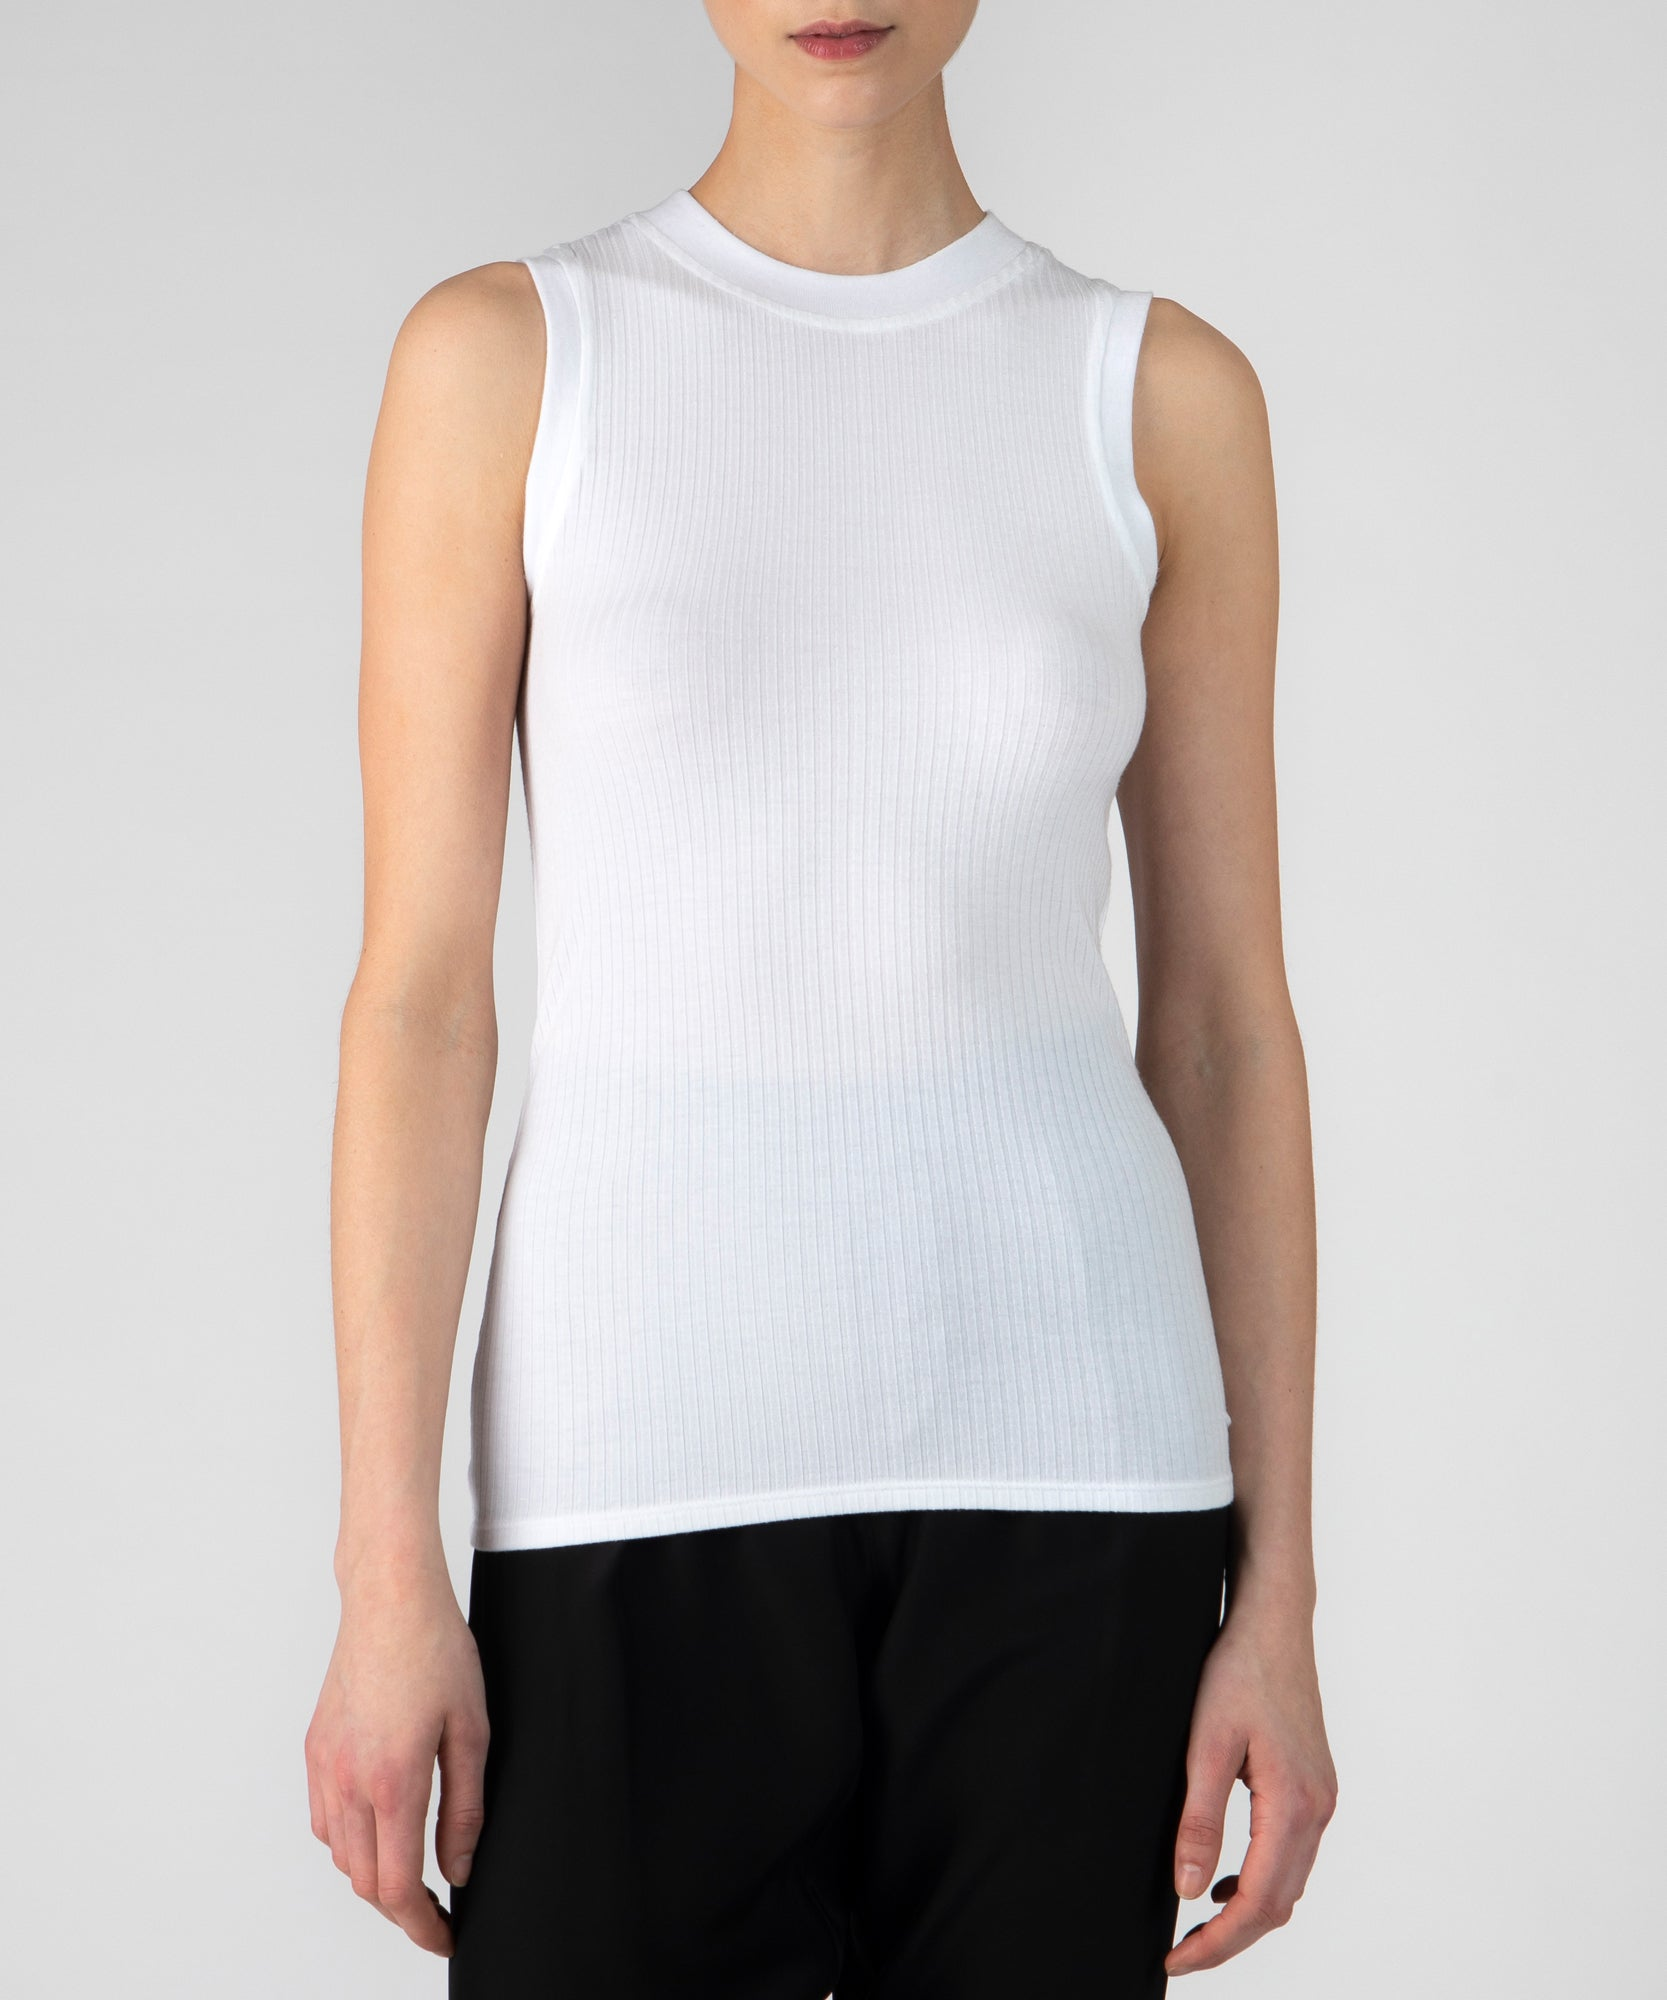 White Modal Wide Rib Sleeveless Top - Women's Top by ATM Anthony Thomas Melillo